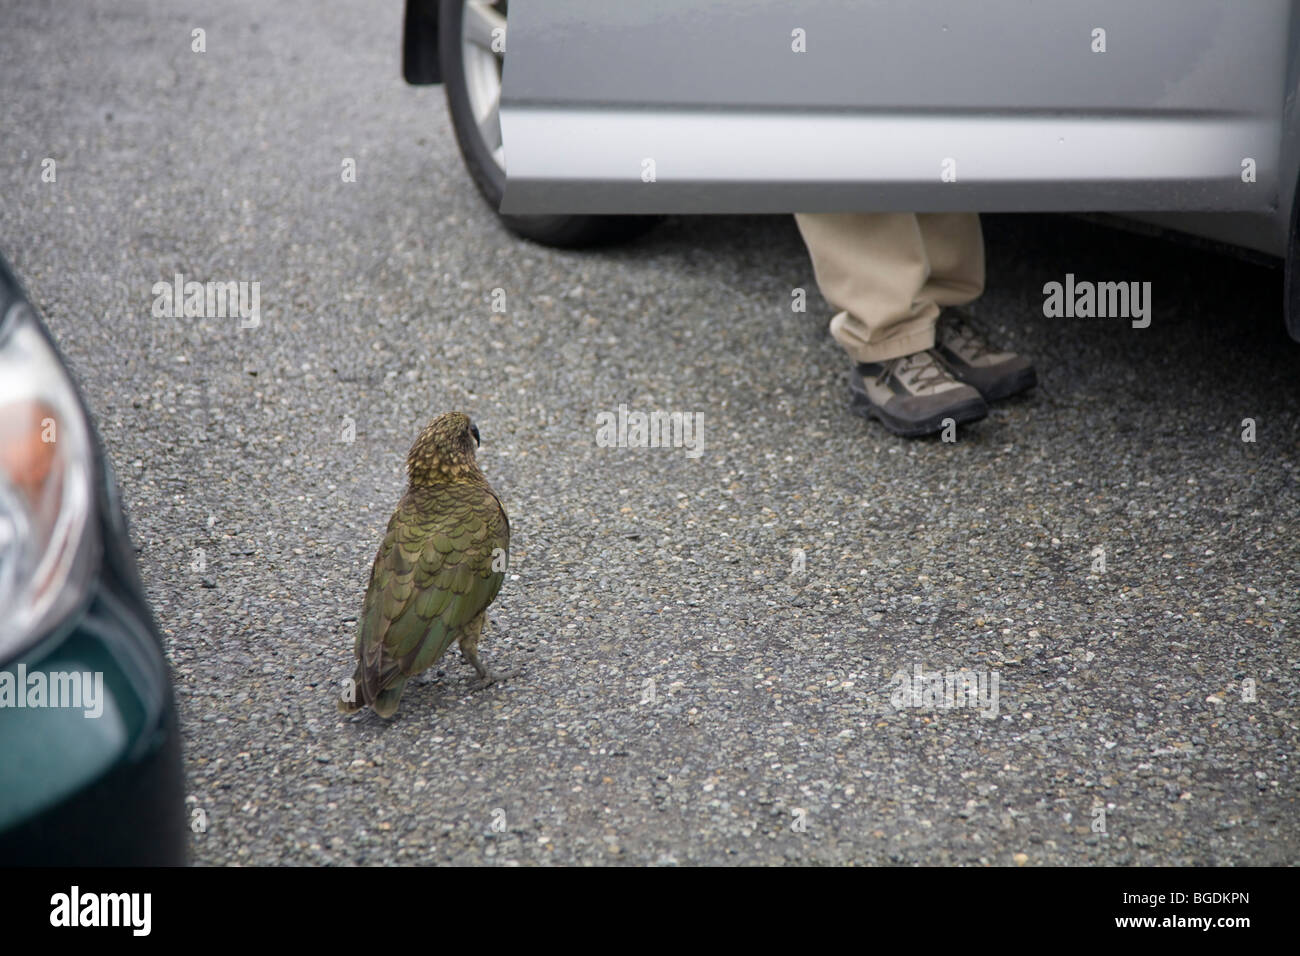 Kea (nestor notabilis) interested to find out what's inside a car, New Zealand, South Island - Stock Image